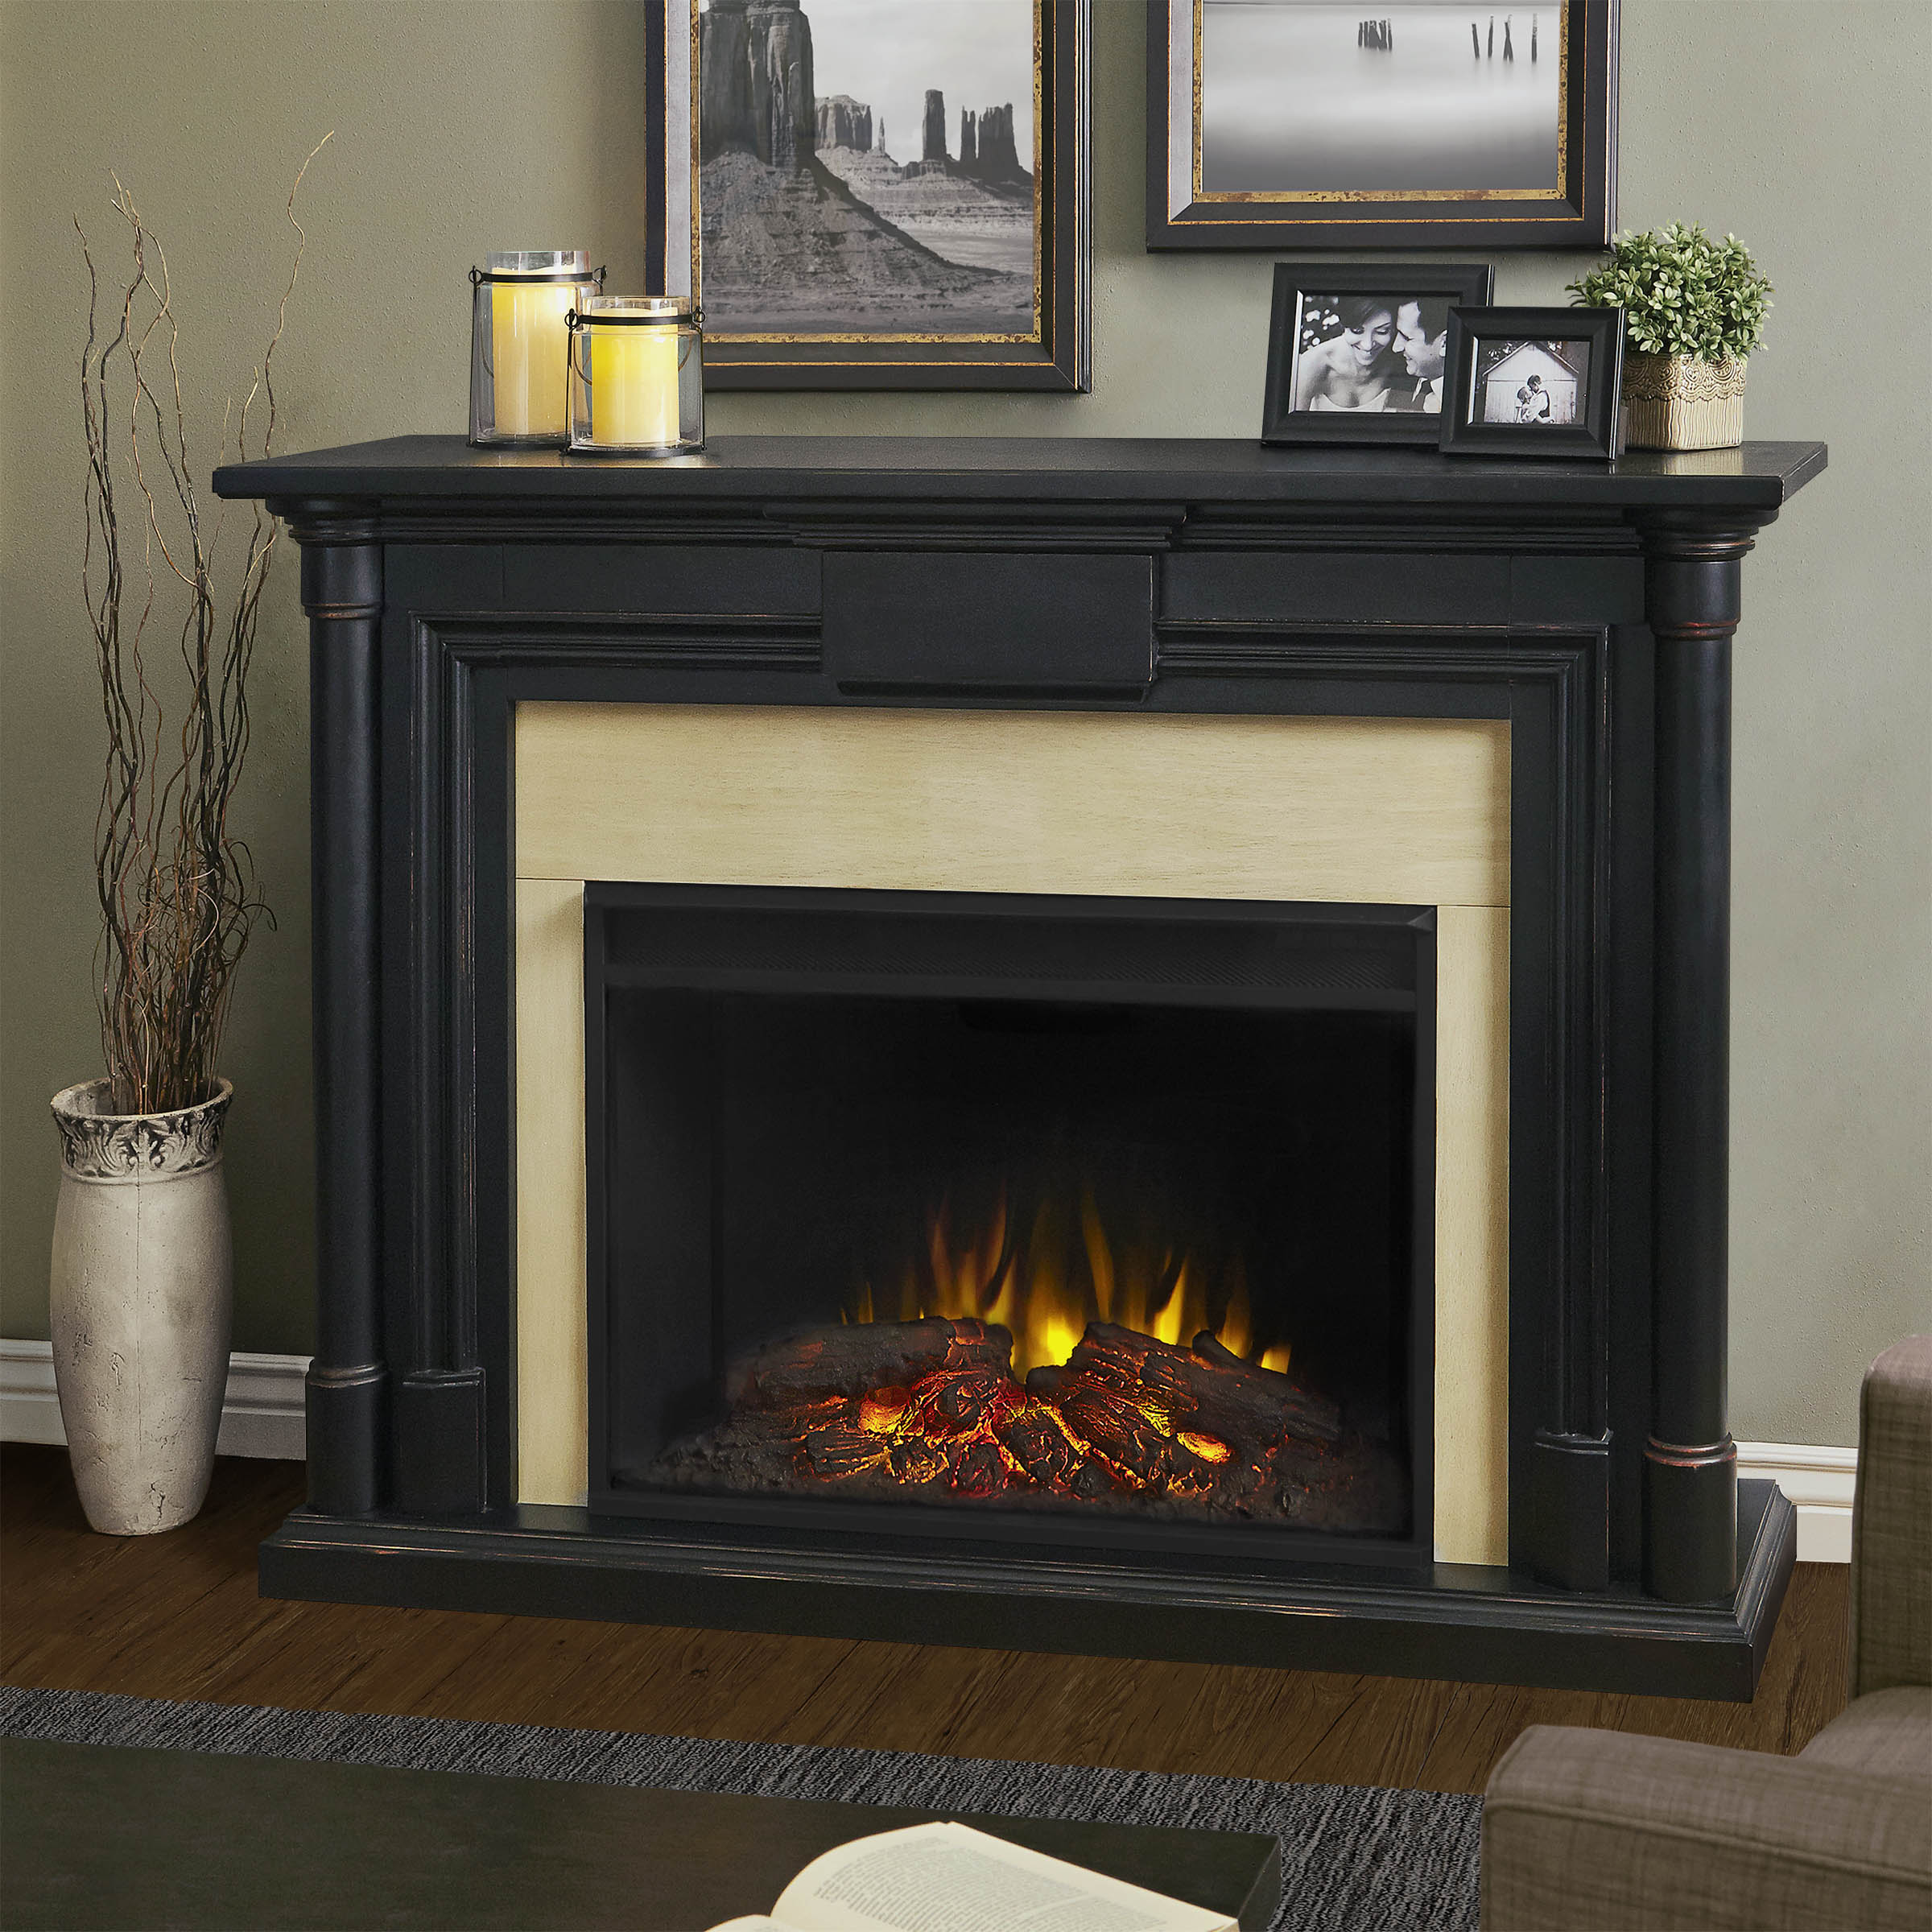 "The Maxwell represents a new generation of Real Flame electric fireplaces. The 40"" (diagonal) Grand Series firebox is 30% larger than our standard firebox"